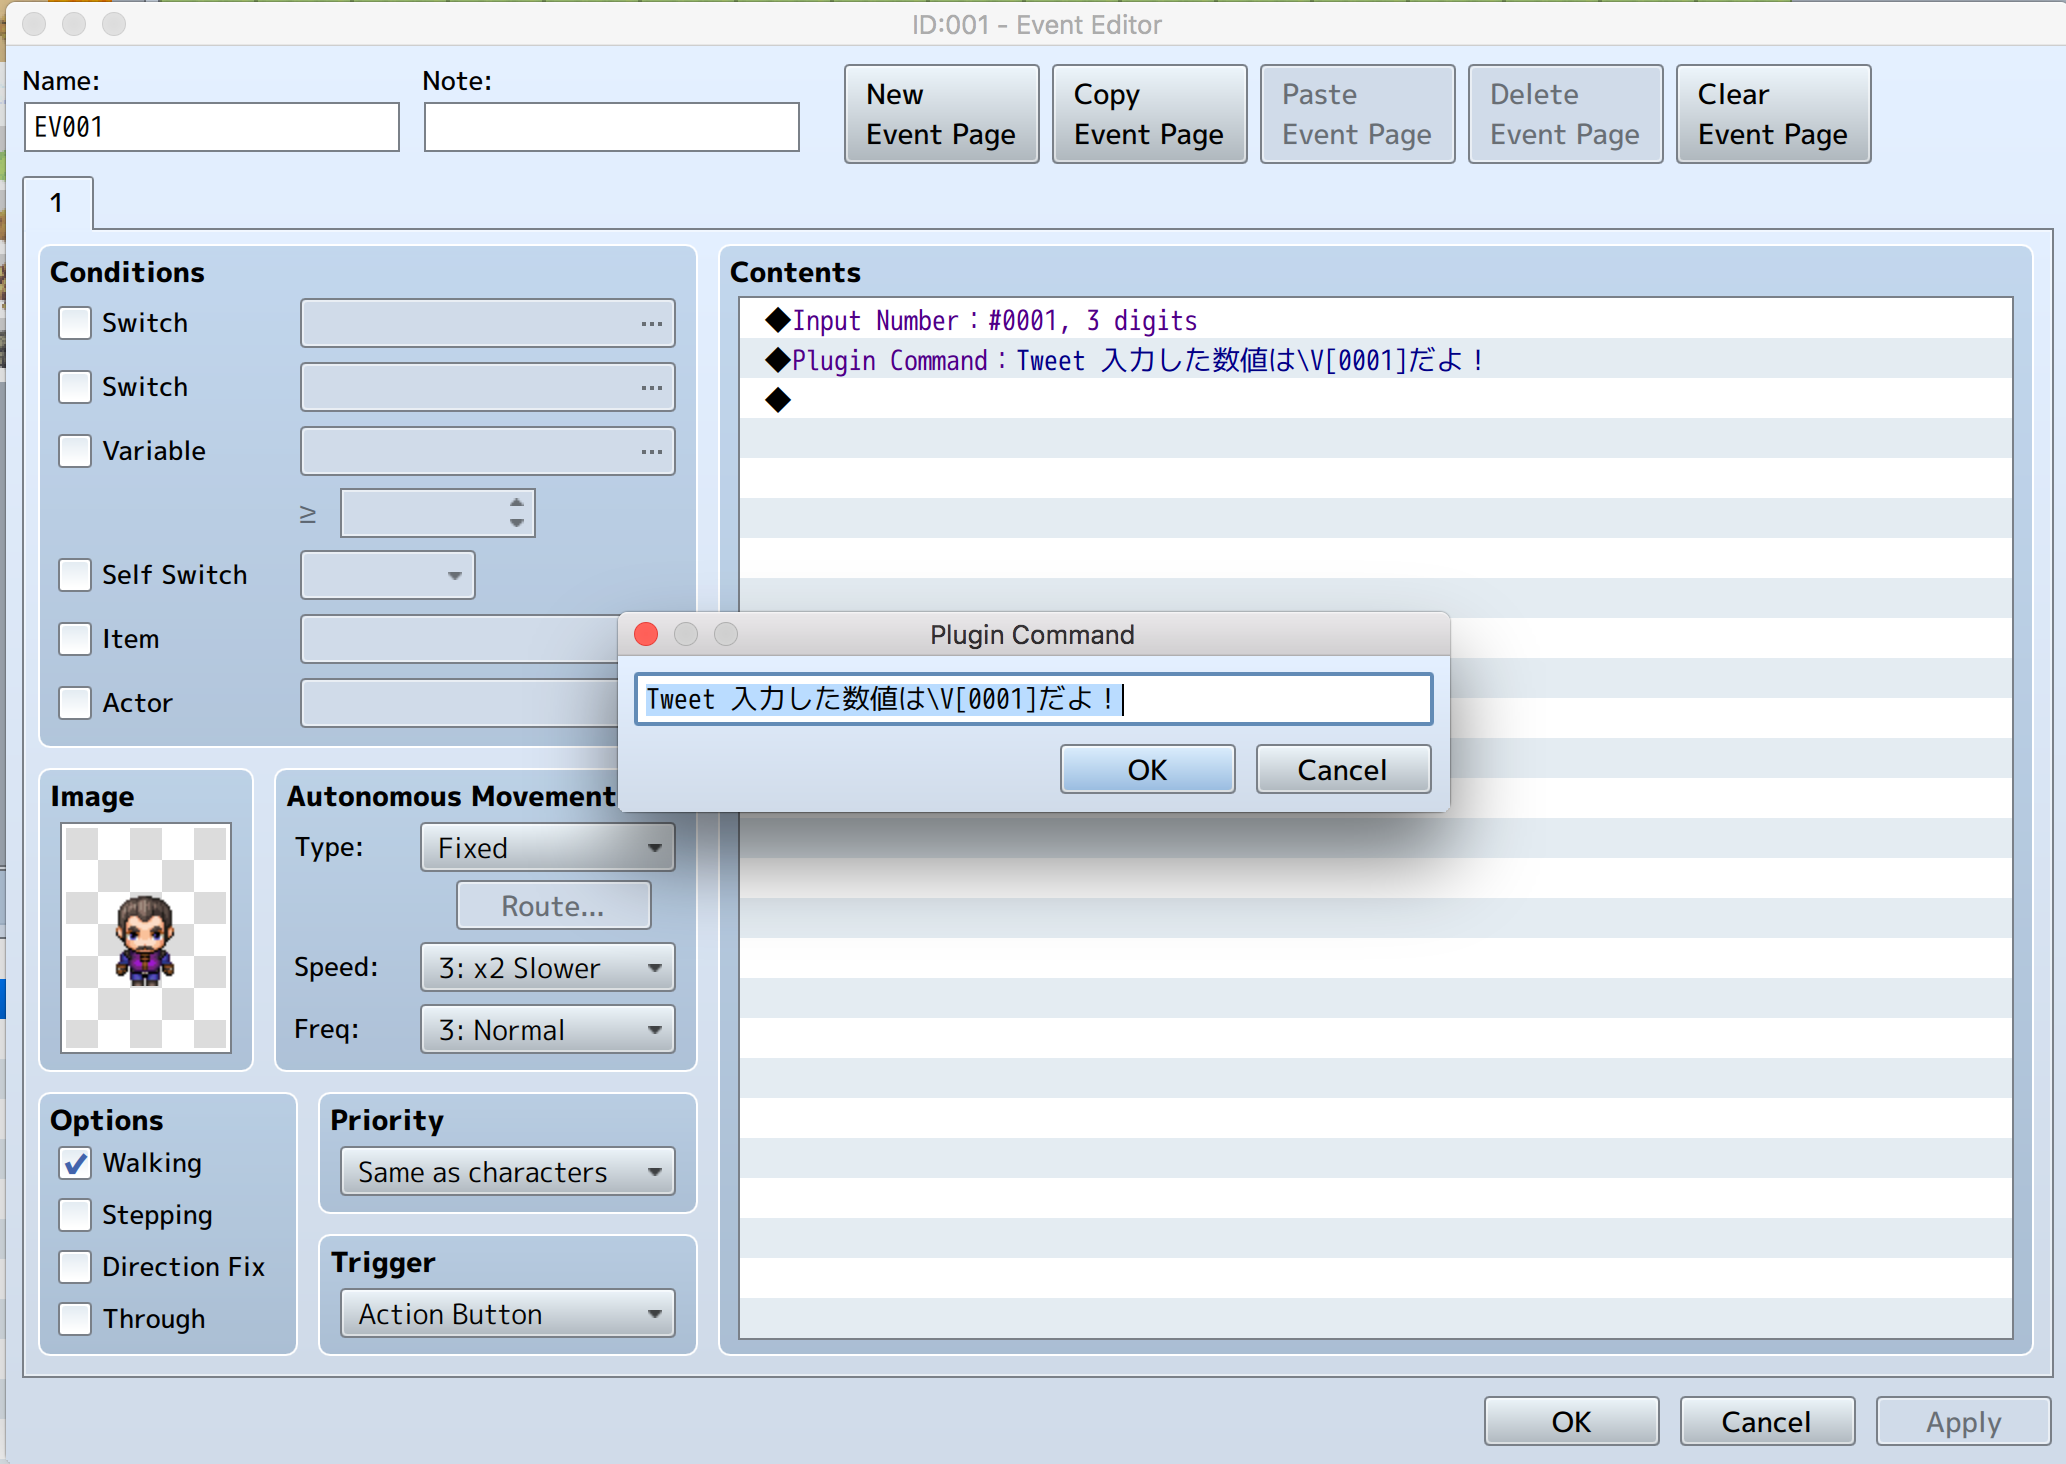 Plugin_Command_and_ID_001_-_Event_Editor_and_Minimum_-_RPG_Maker_MV.png